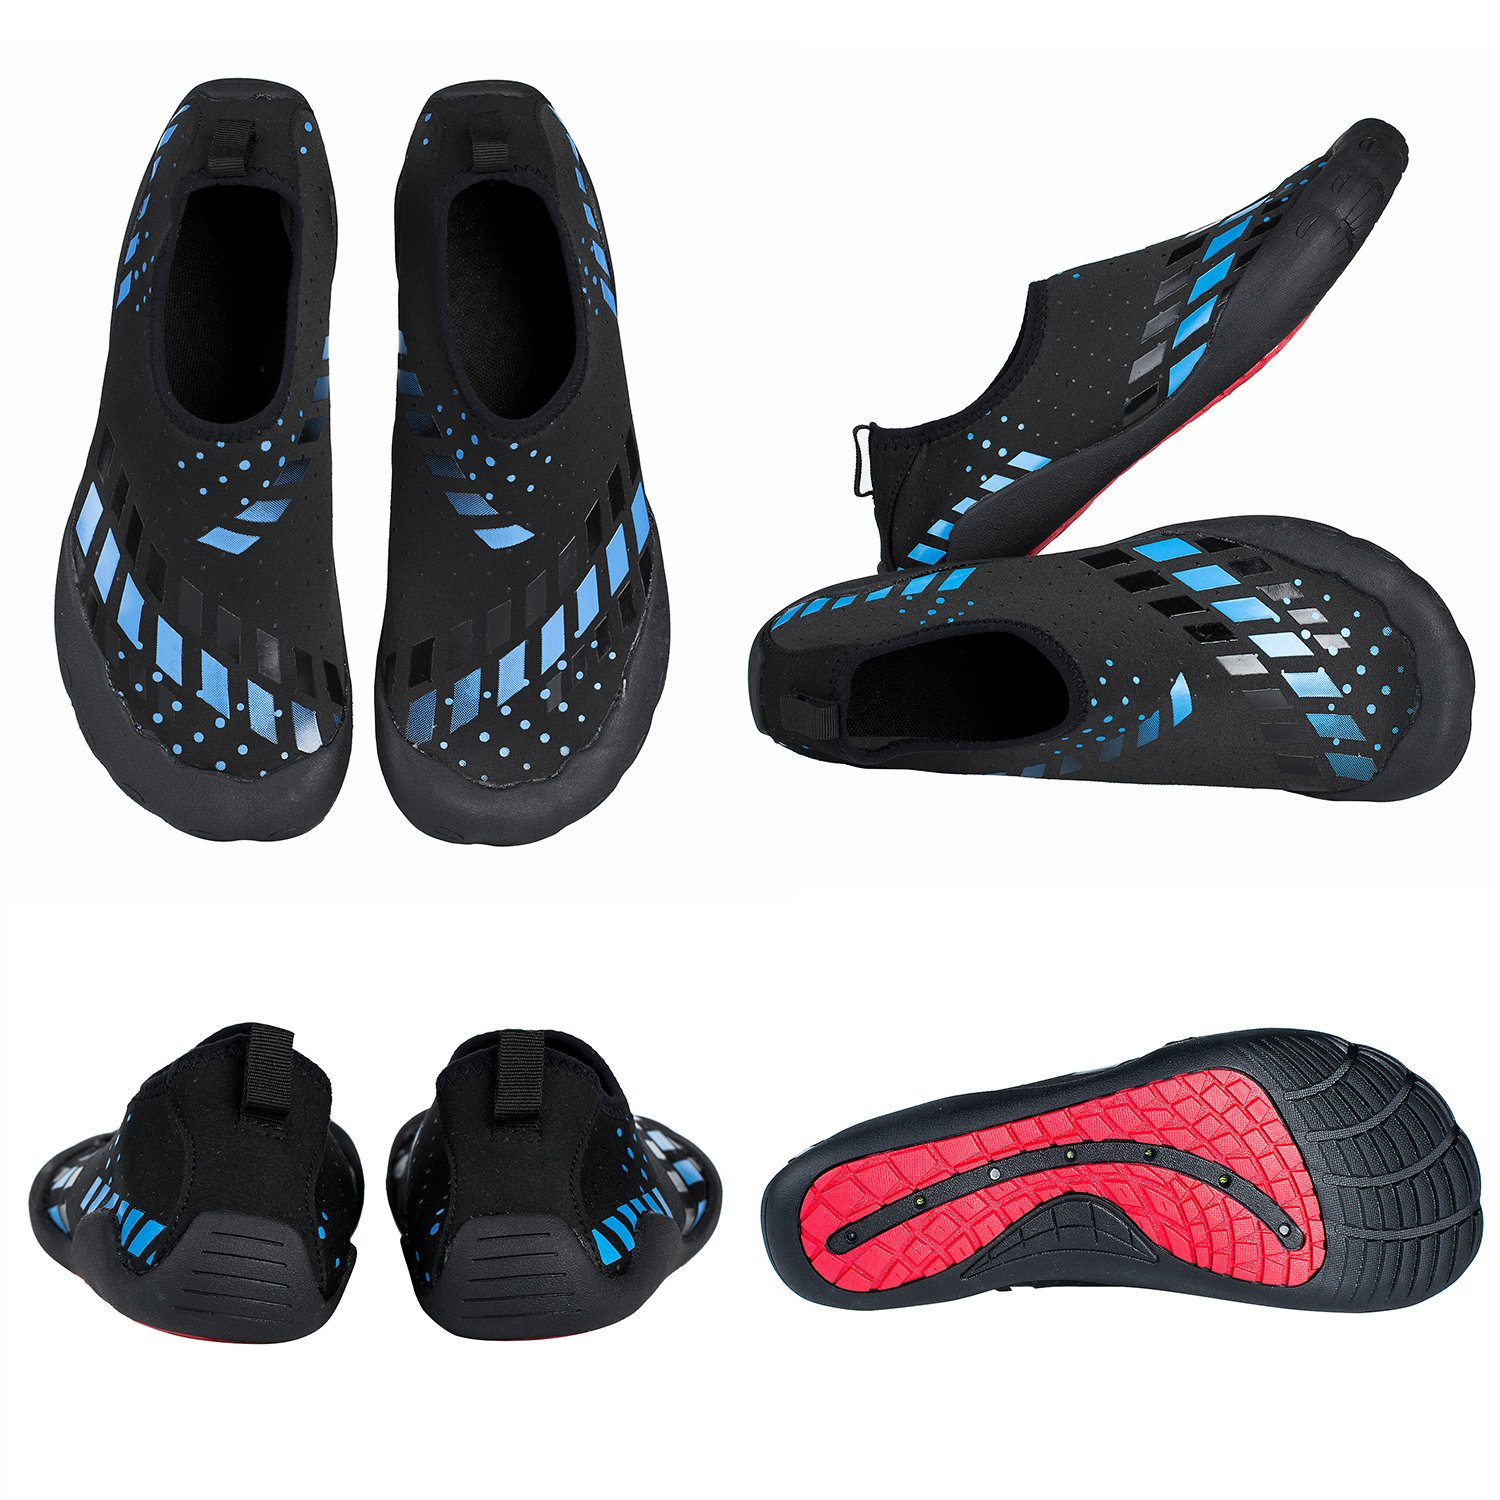 Water Shoes Quick Dry Aqua Water Shoes Beach Walking Swming Yoga Exercise by Youweb (Image #2)